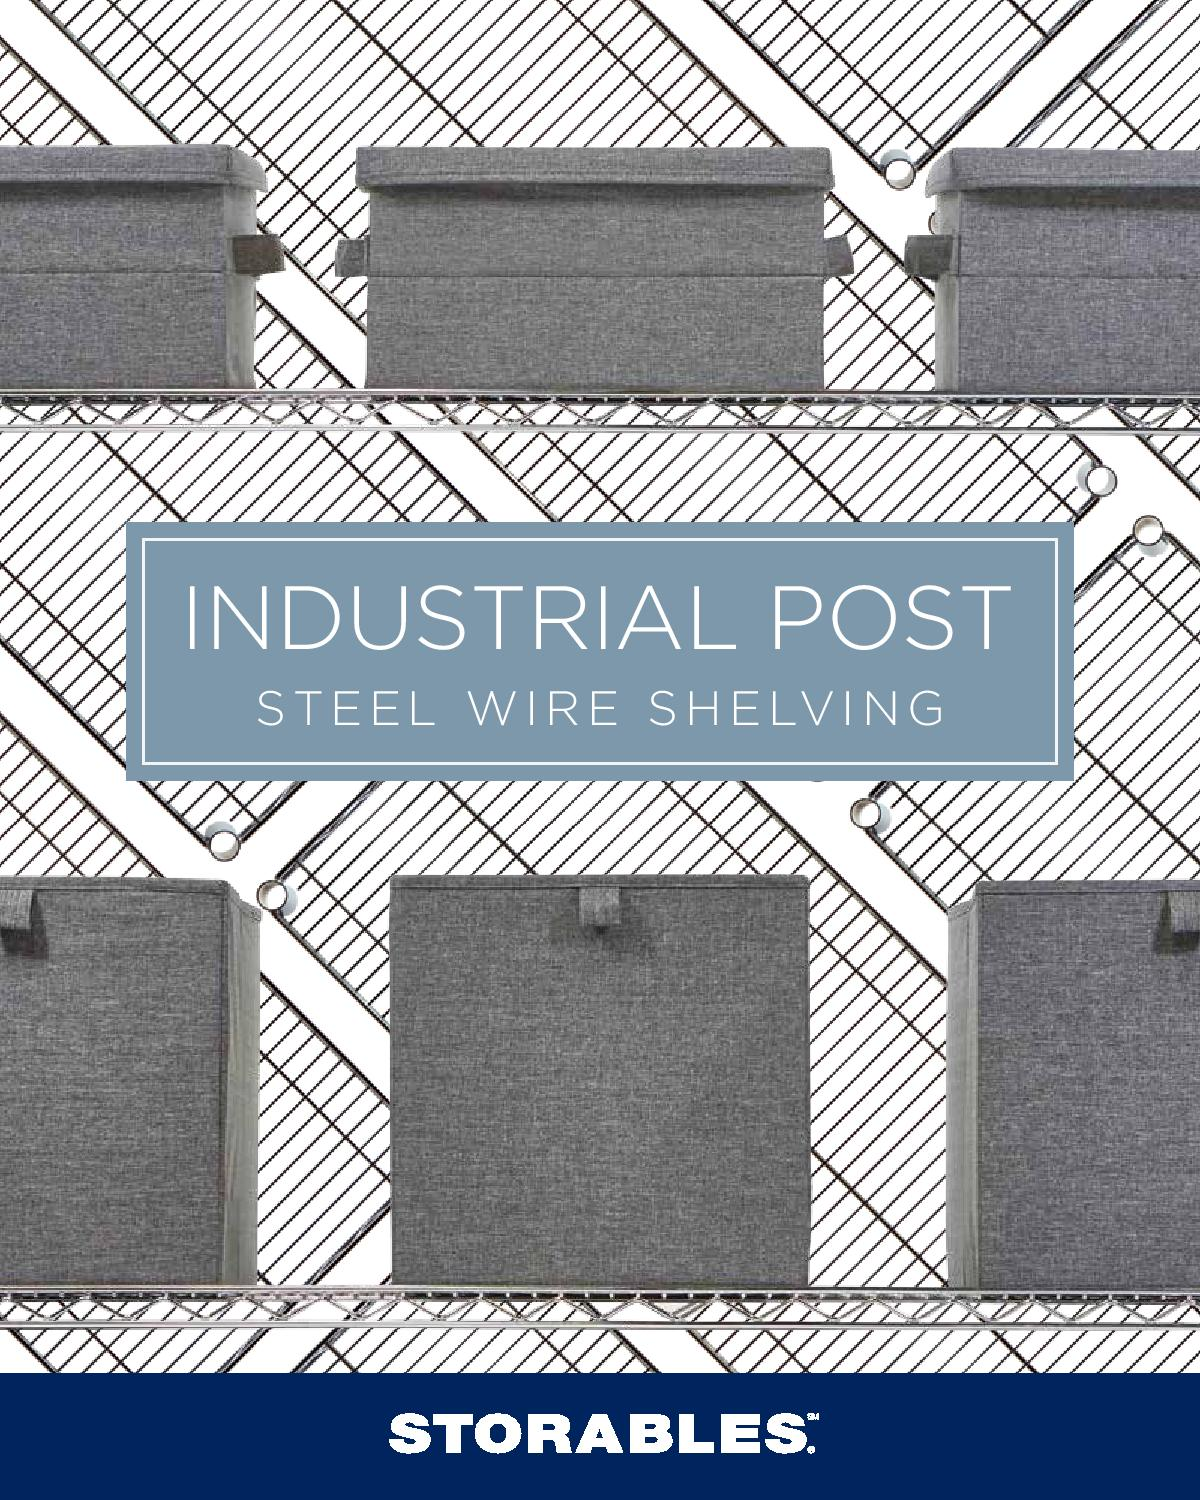 Industrial Post Steel Wire Shelving Brochure-page-001